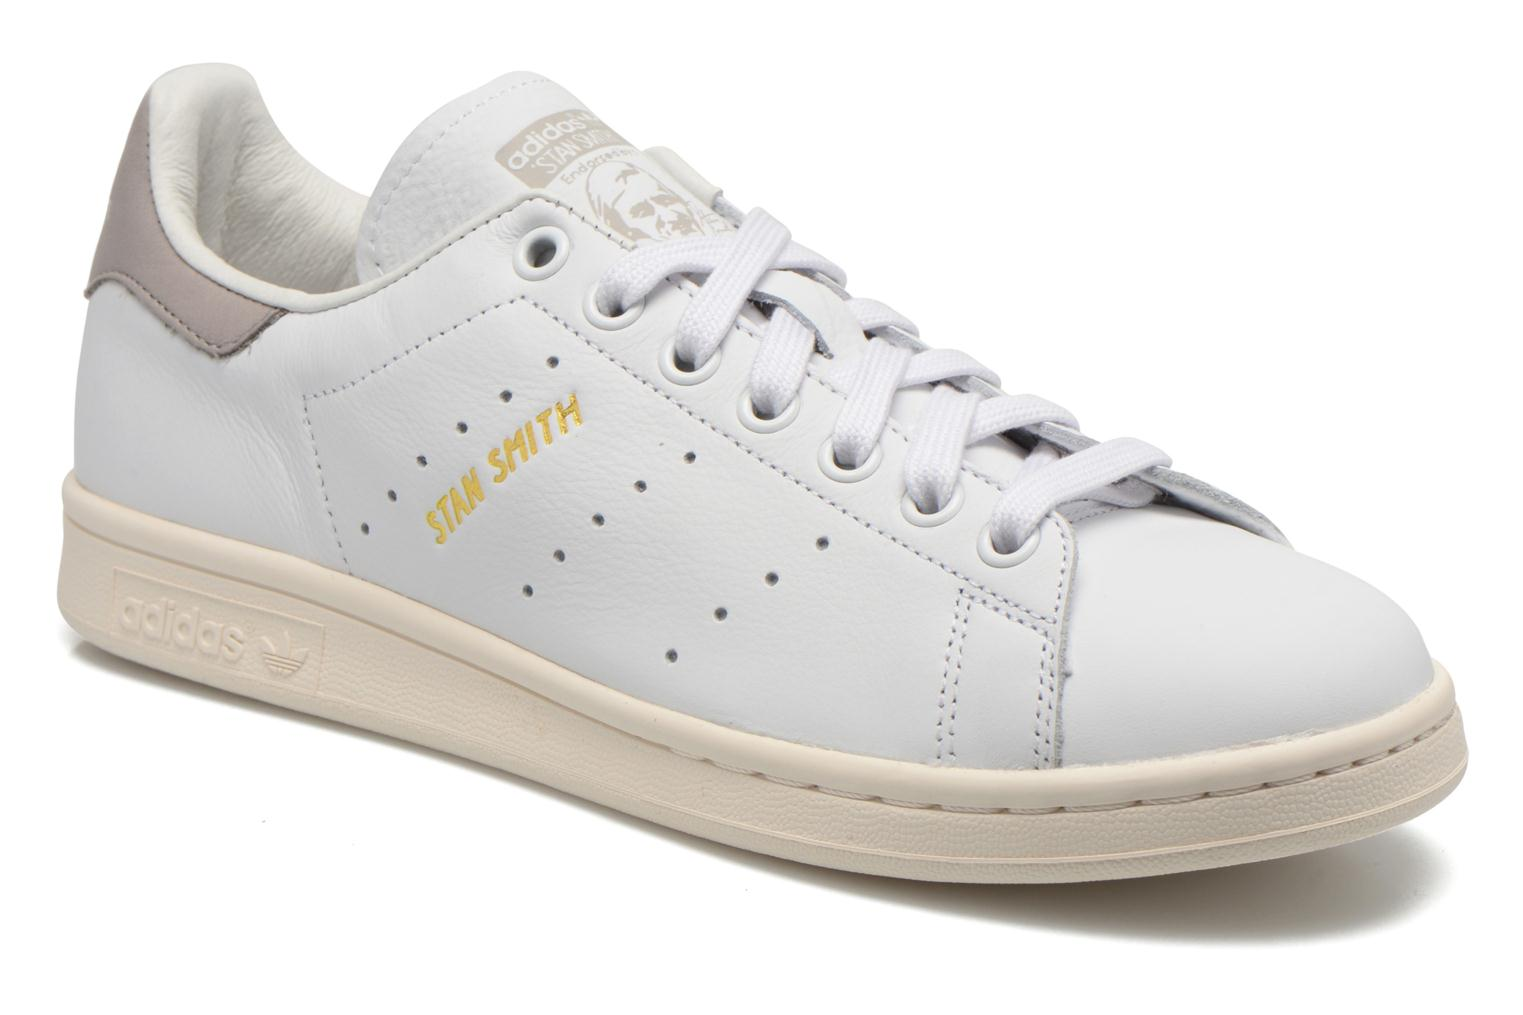 Stan Smith Ftwbla/Ftwbla/Gracla